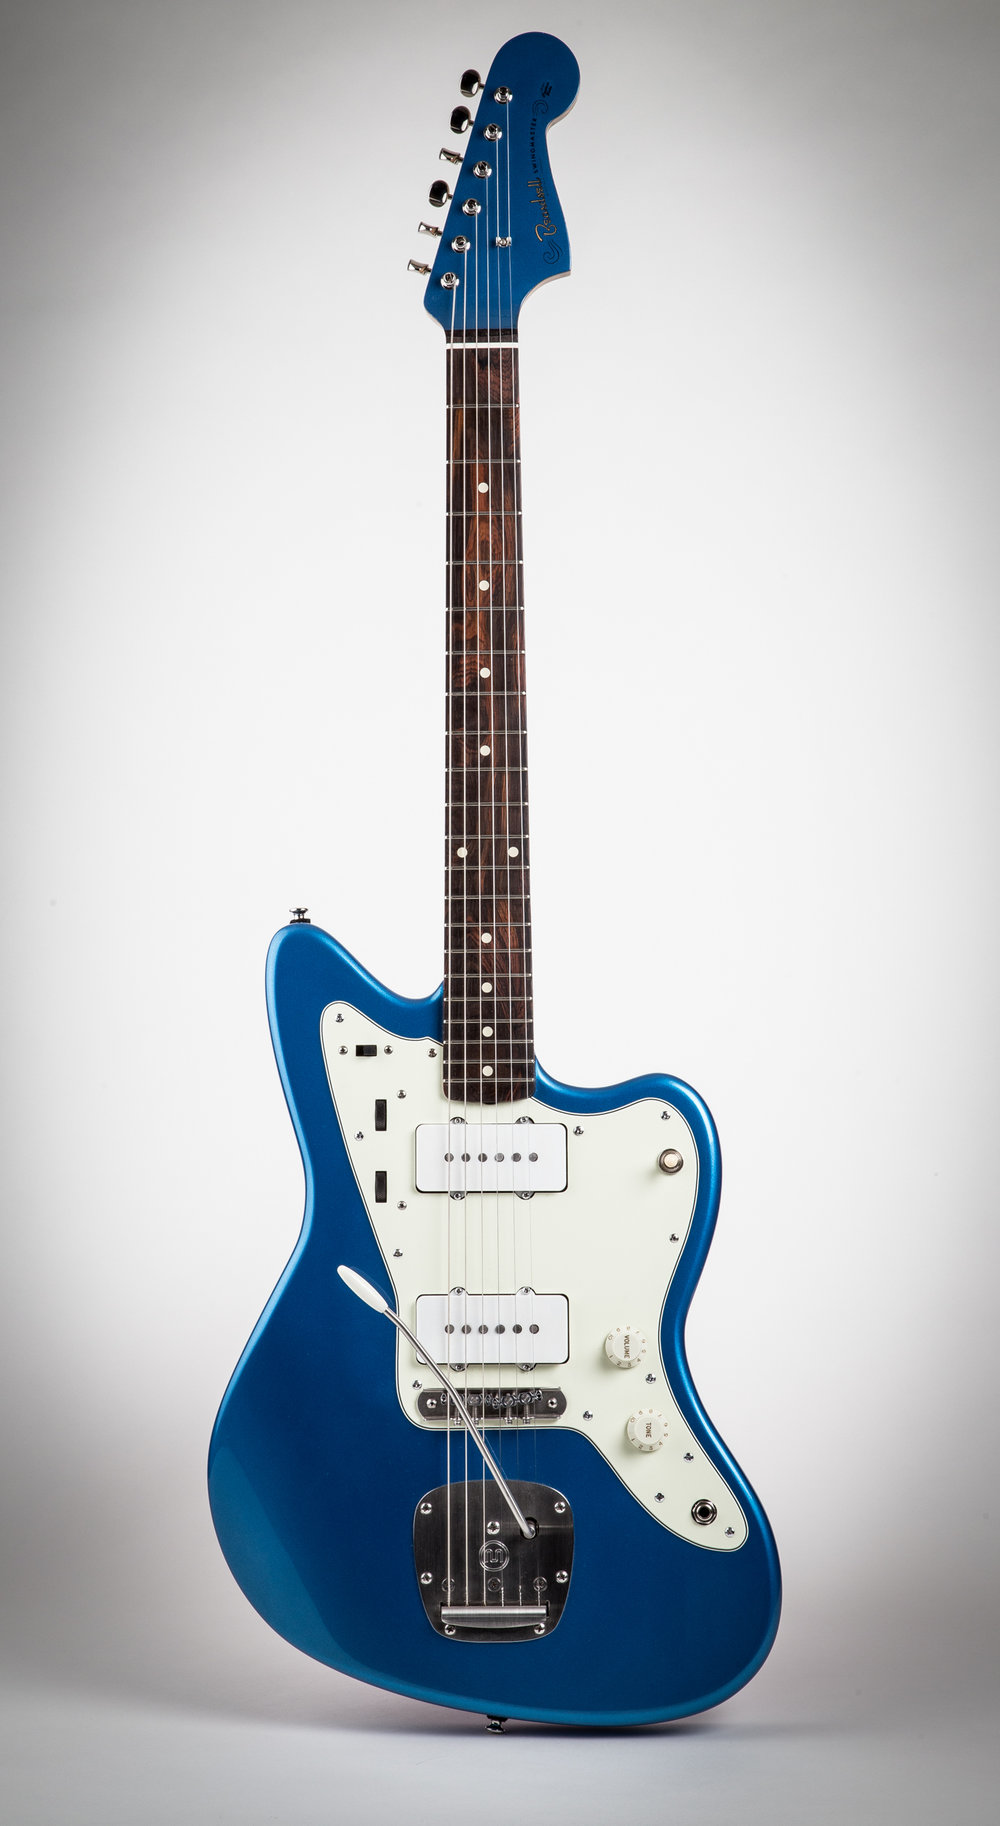 "7/11-SM ""Swingmaster"" in metallic '69 Corvette blue. It swings baby!"